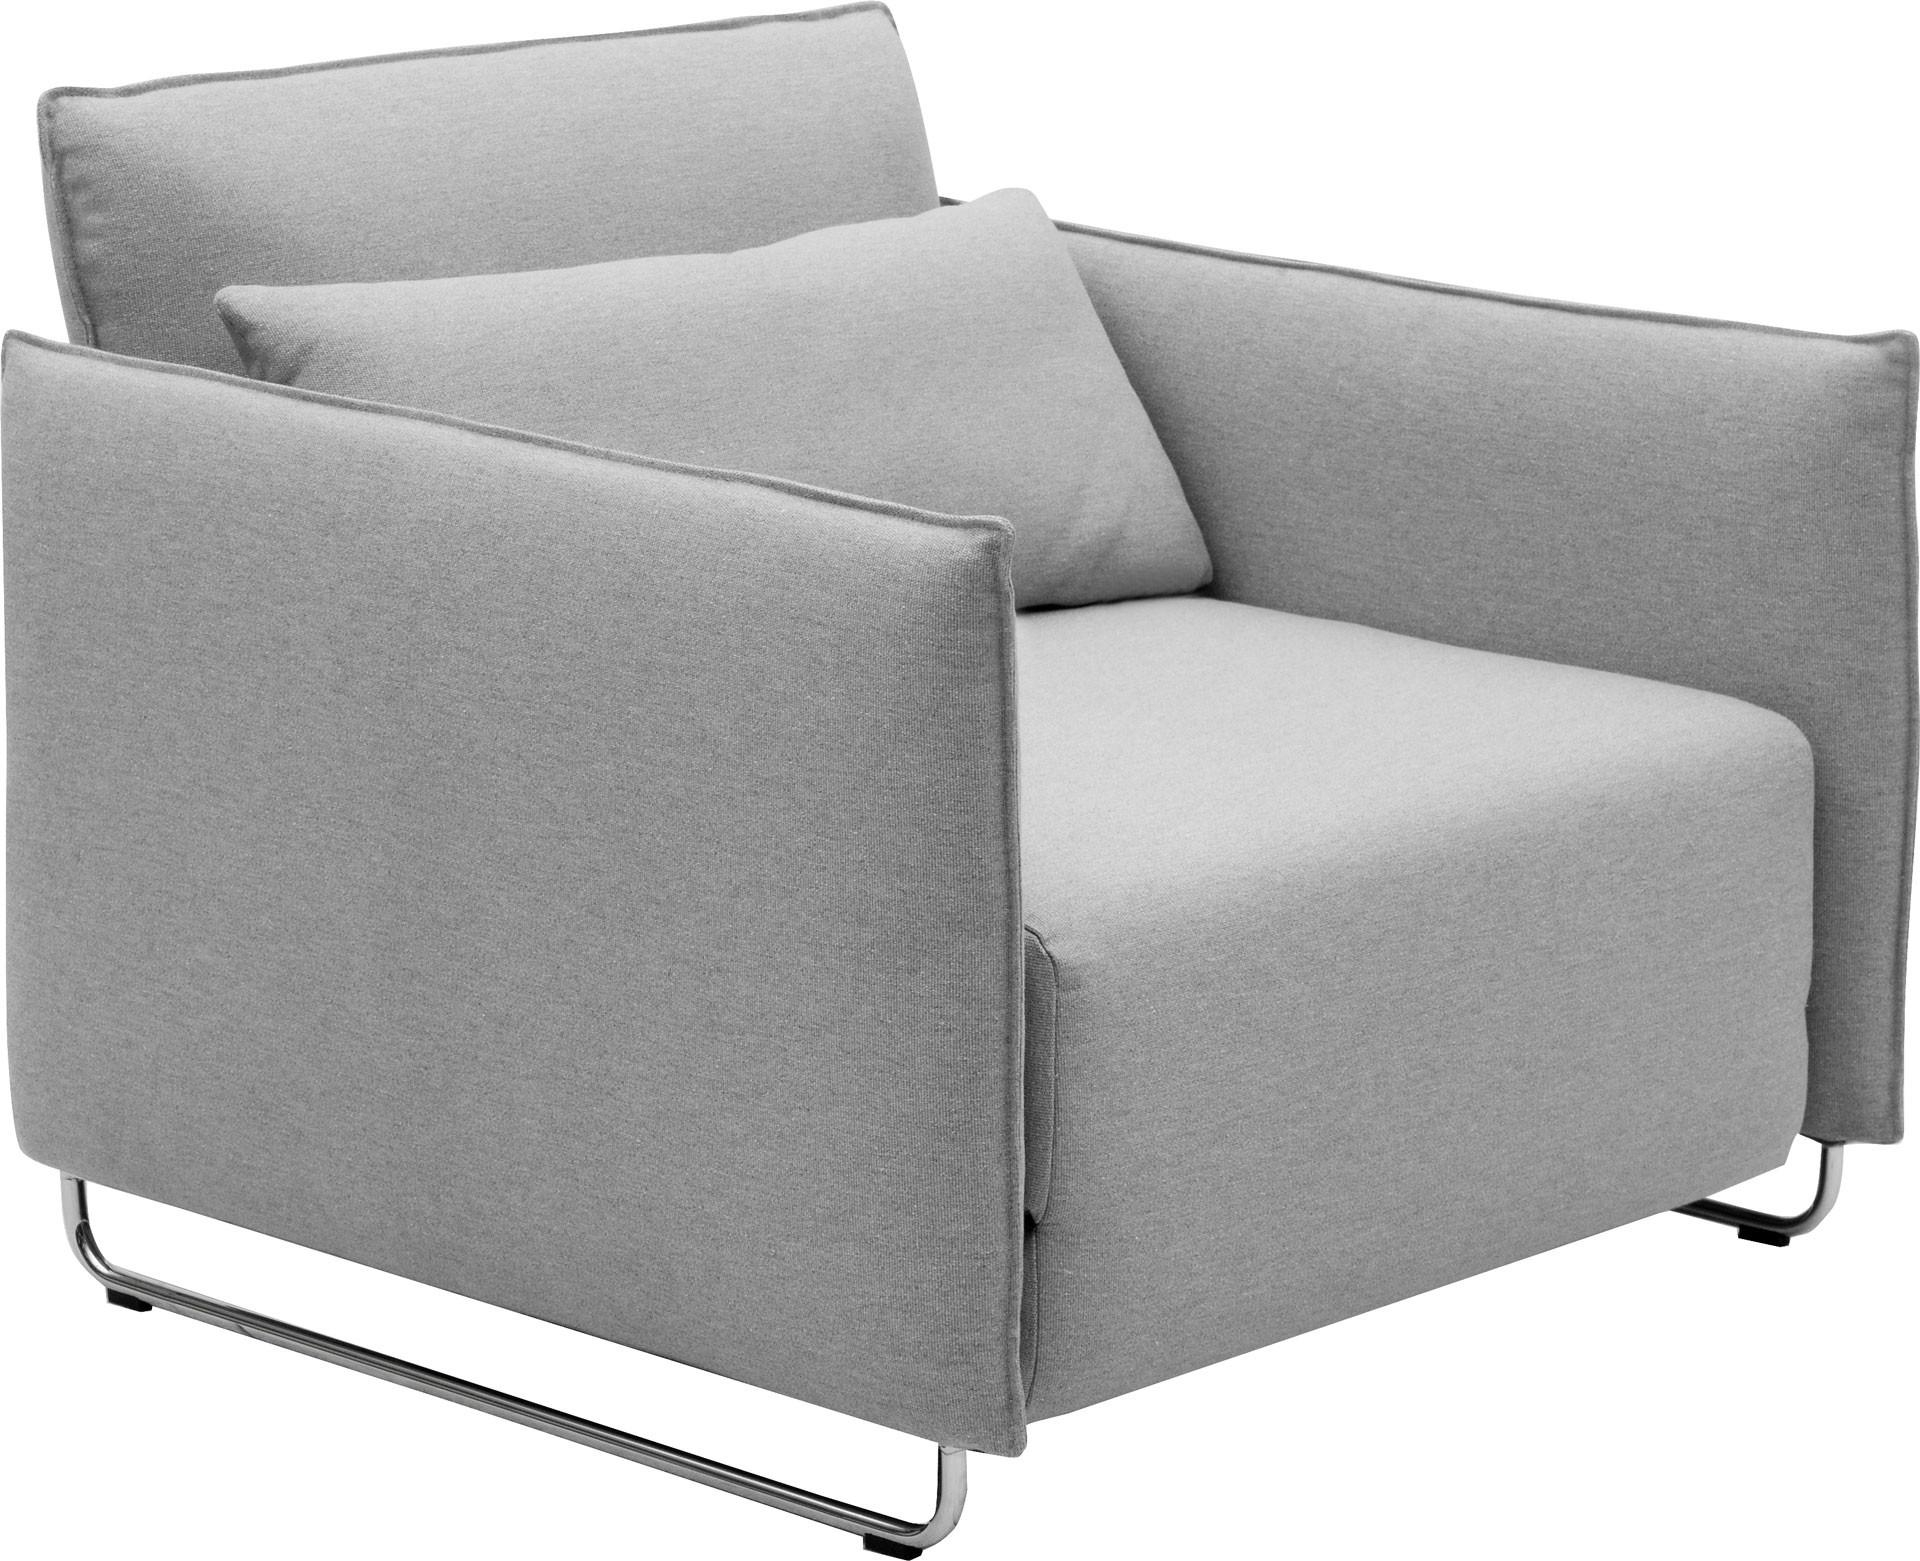 Sofas Center : Single Chair Sofa With Memory Foamsingle Foam Regarding Single Chair Sofa Bed (View 3 of 20)